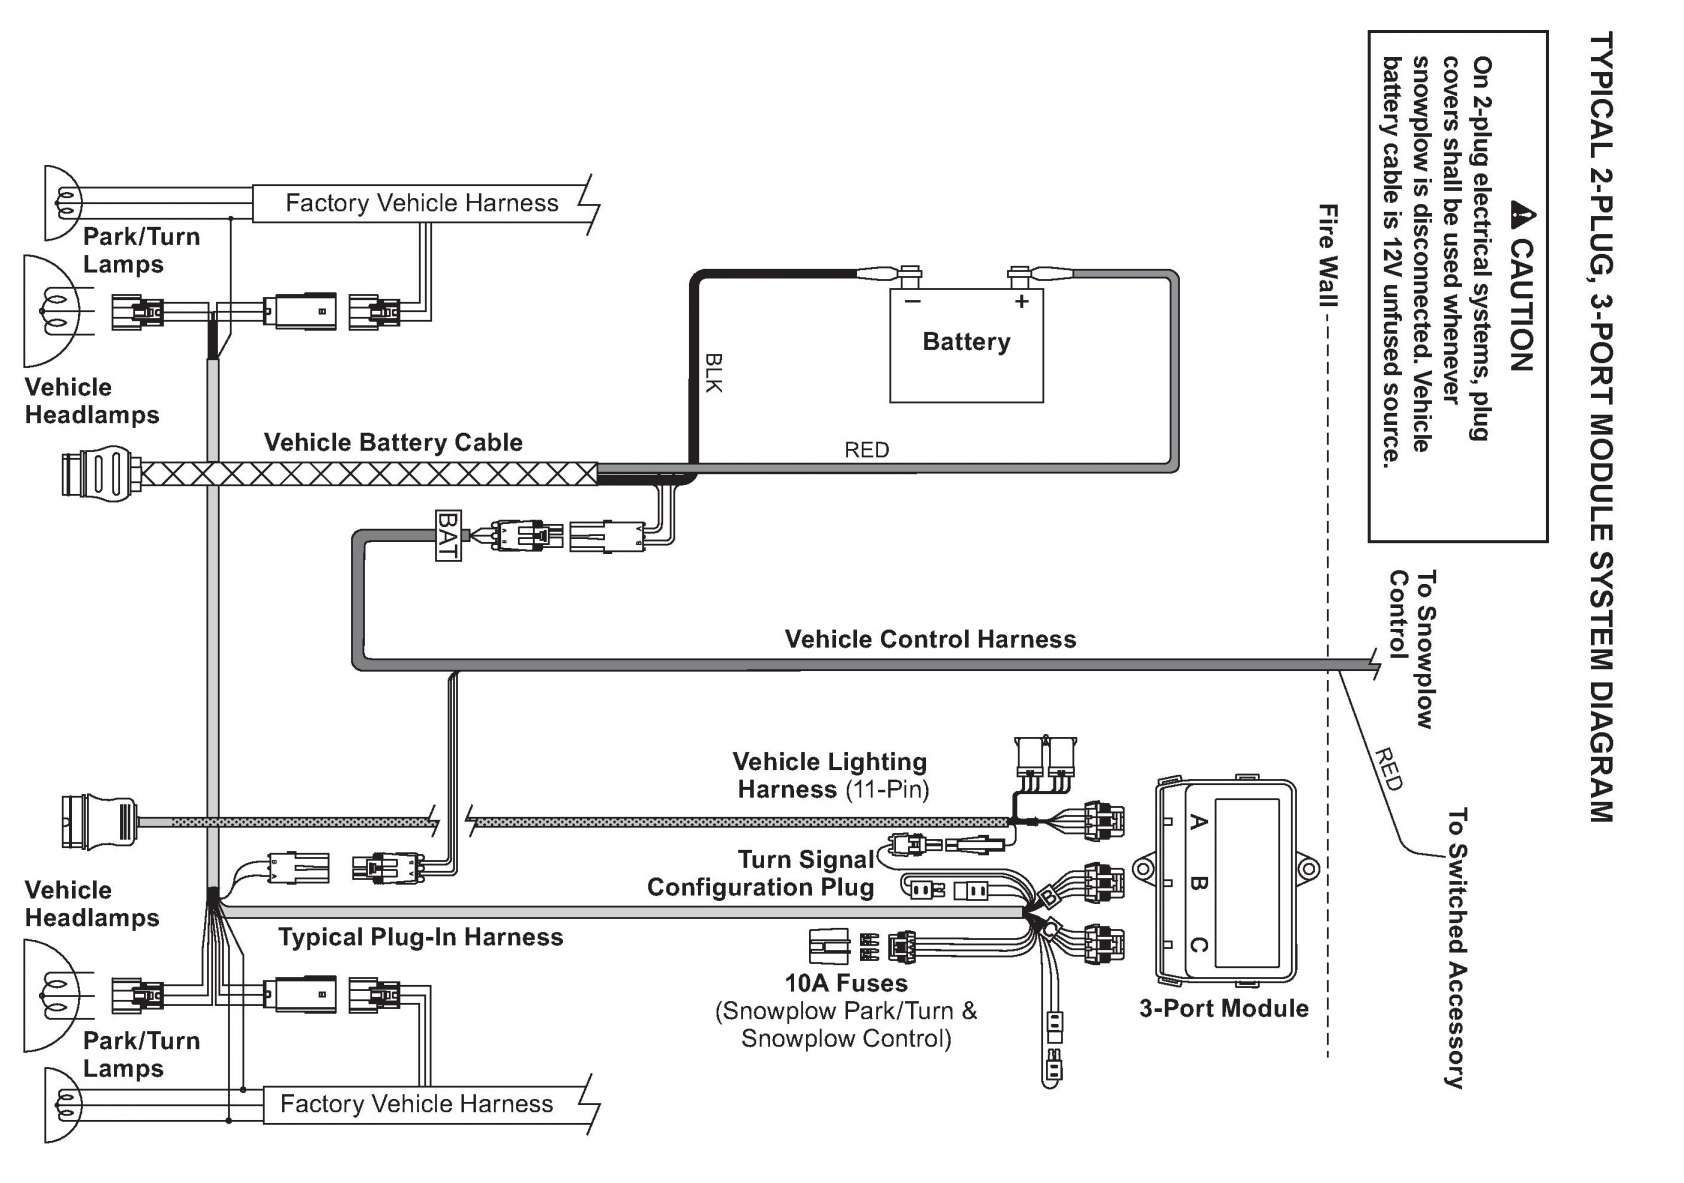 [CSDW_4250]   DIAGRAM] Switch Wiring Diagram Electric FULL Version HD Quality Trailer Jack  - ELMAGRAFIK.CHEFSCUISINIERSAIN.FR | Wiring For Trailer Jack |  | elmagrafik chefscuisiniersain fr